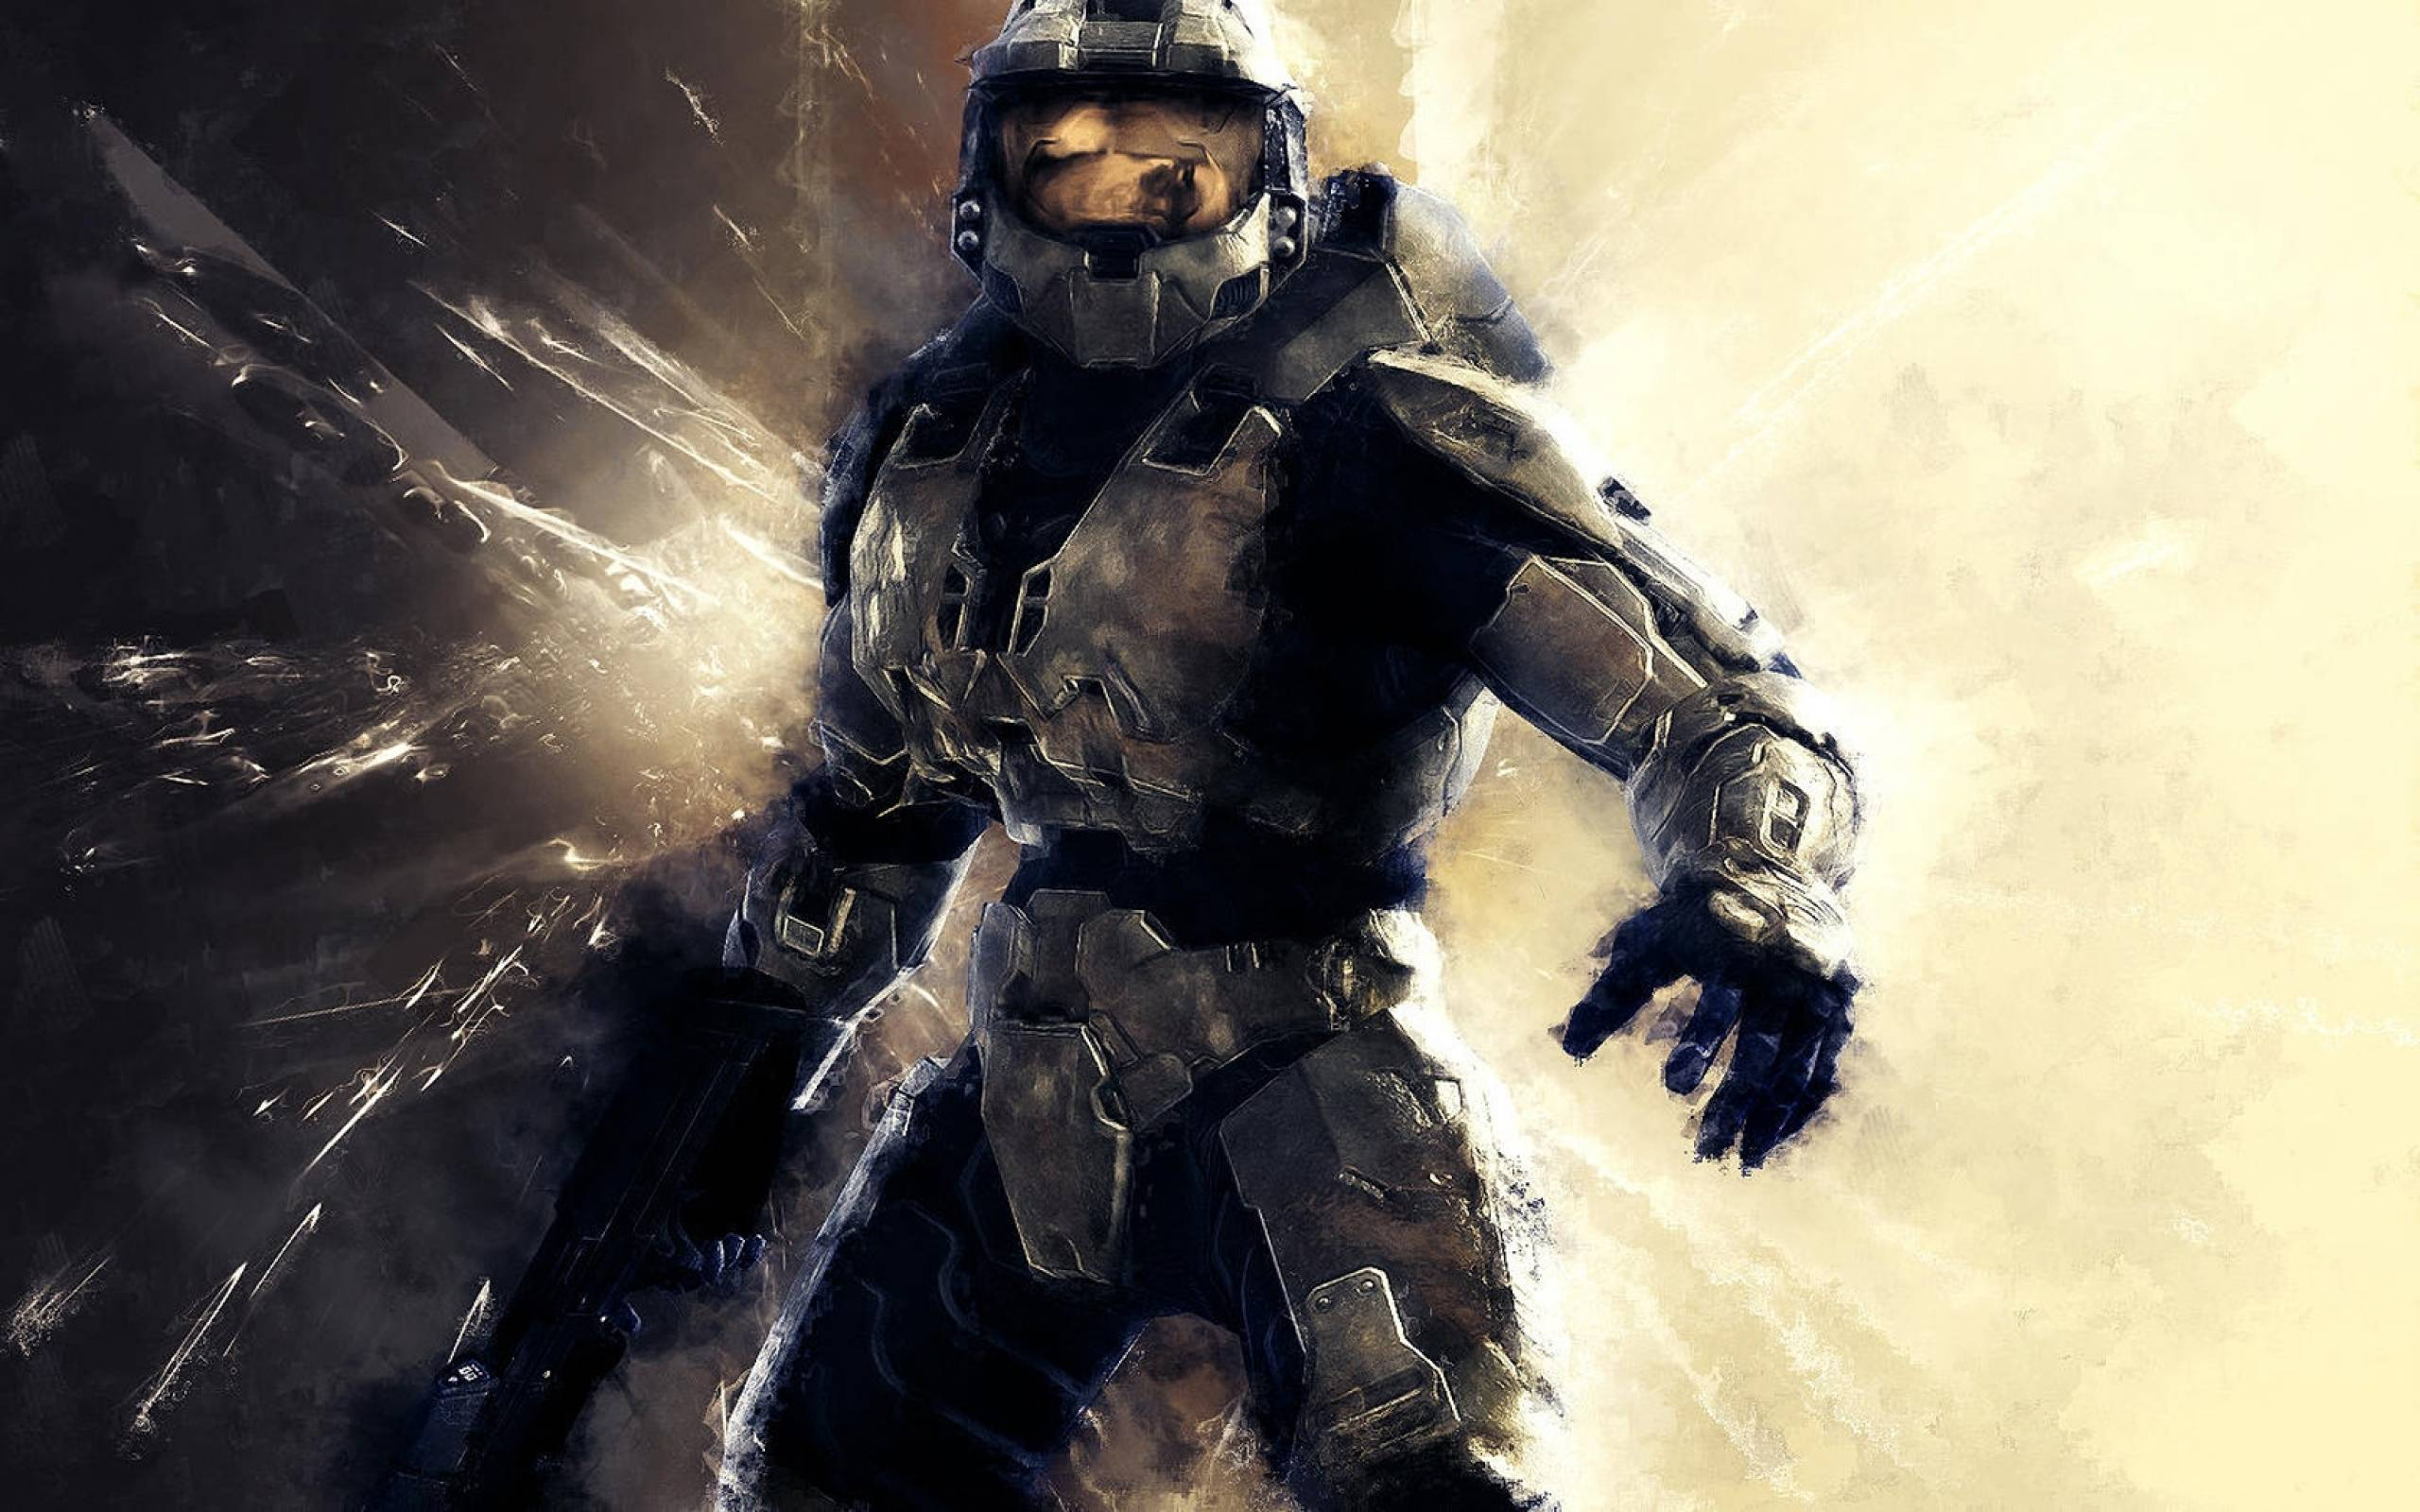 wallpaper free game halo - photo #12